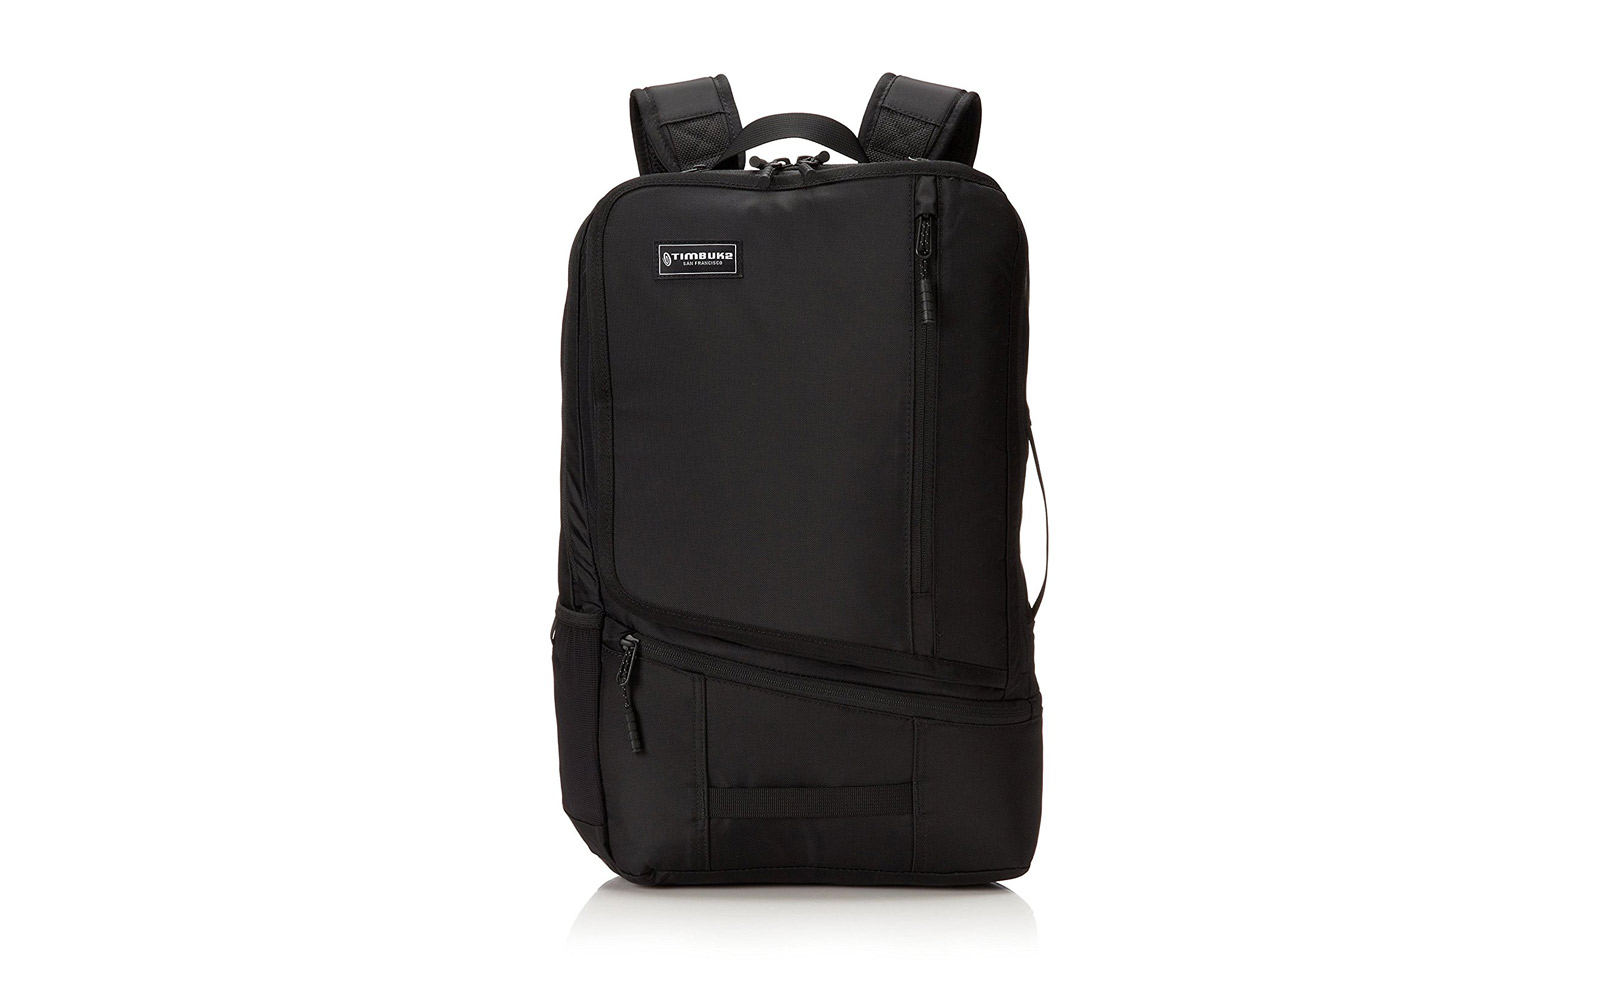 timbuk2 best 17-inch laptop backpack